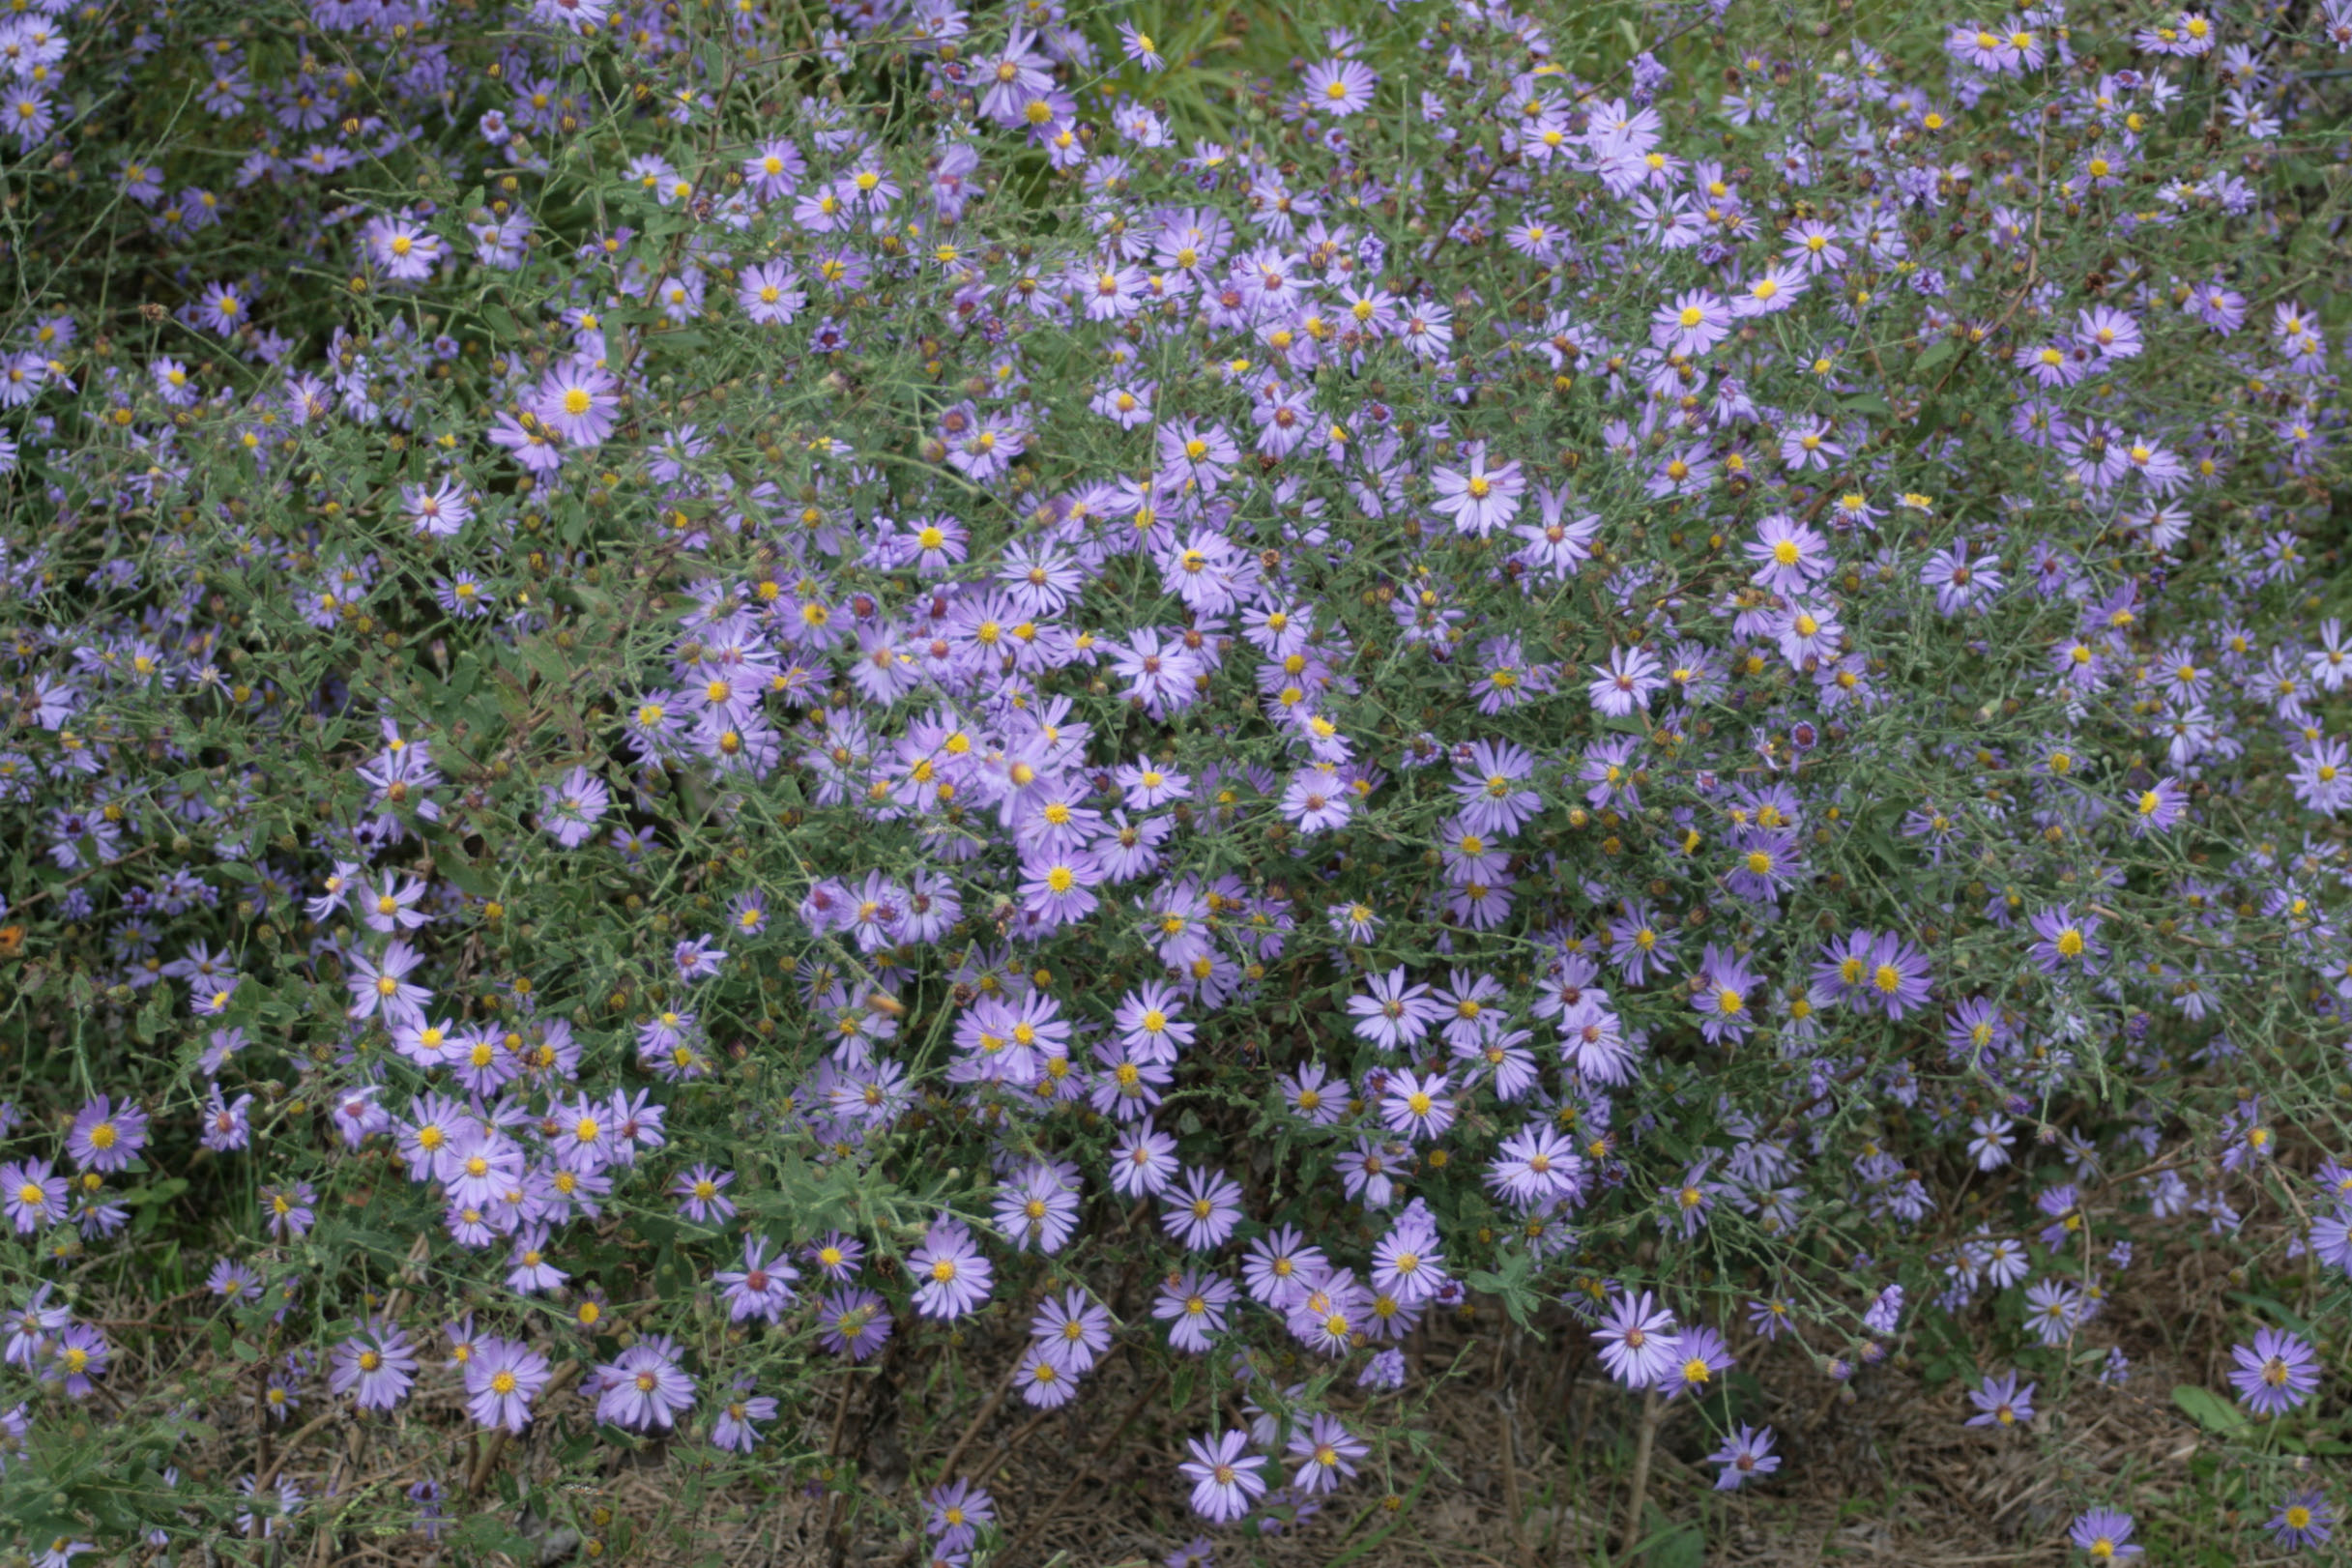 The Scientific Name is Symphyotrichum patens var. patens [= Aster patens]. You will likely hear them called Common Clasping Aster, Late Purple Aster. This picture shows the Large plant with a profusion of purple inflorescences of Symphyotrichum patens var. patens [= Aster patens]